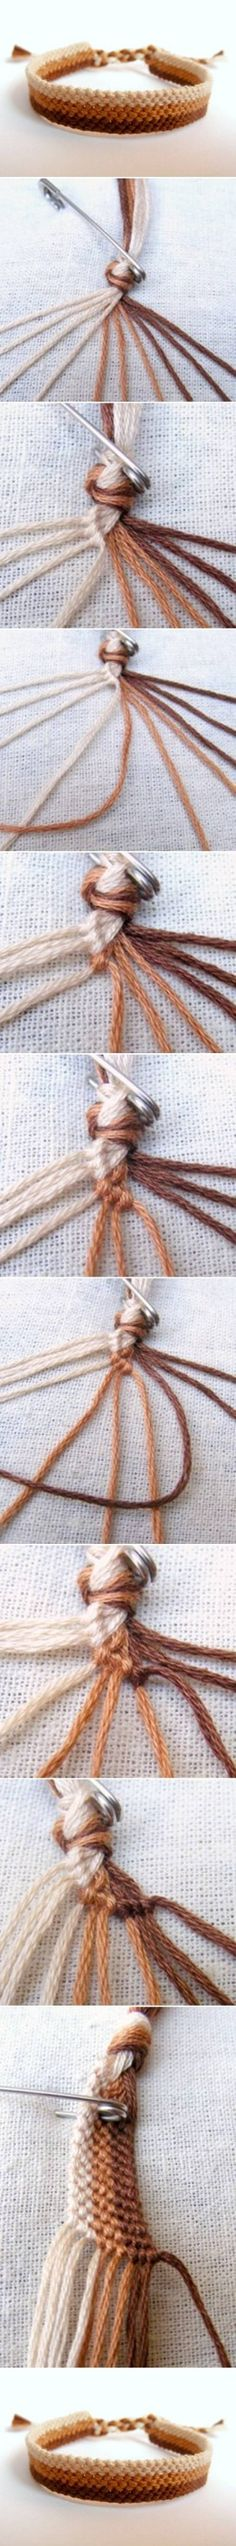 DIY Easy Weave Bracelet DIY Easy Weave Bracelet by diyforever